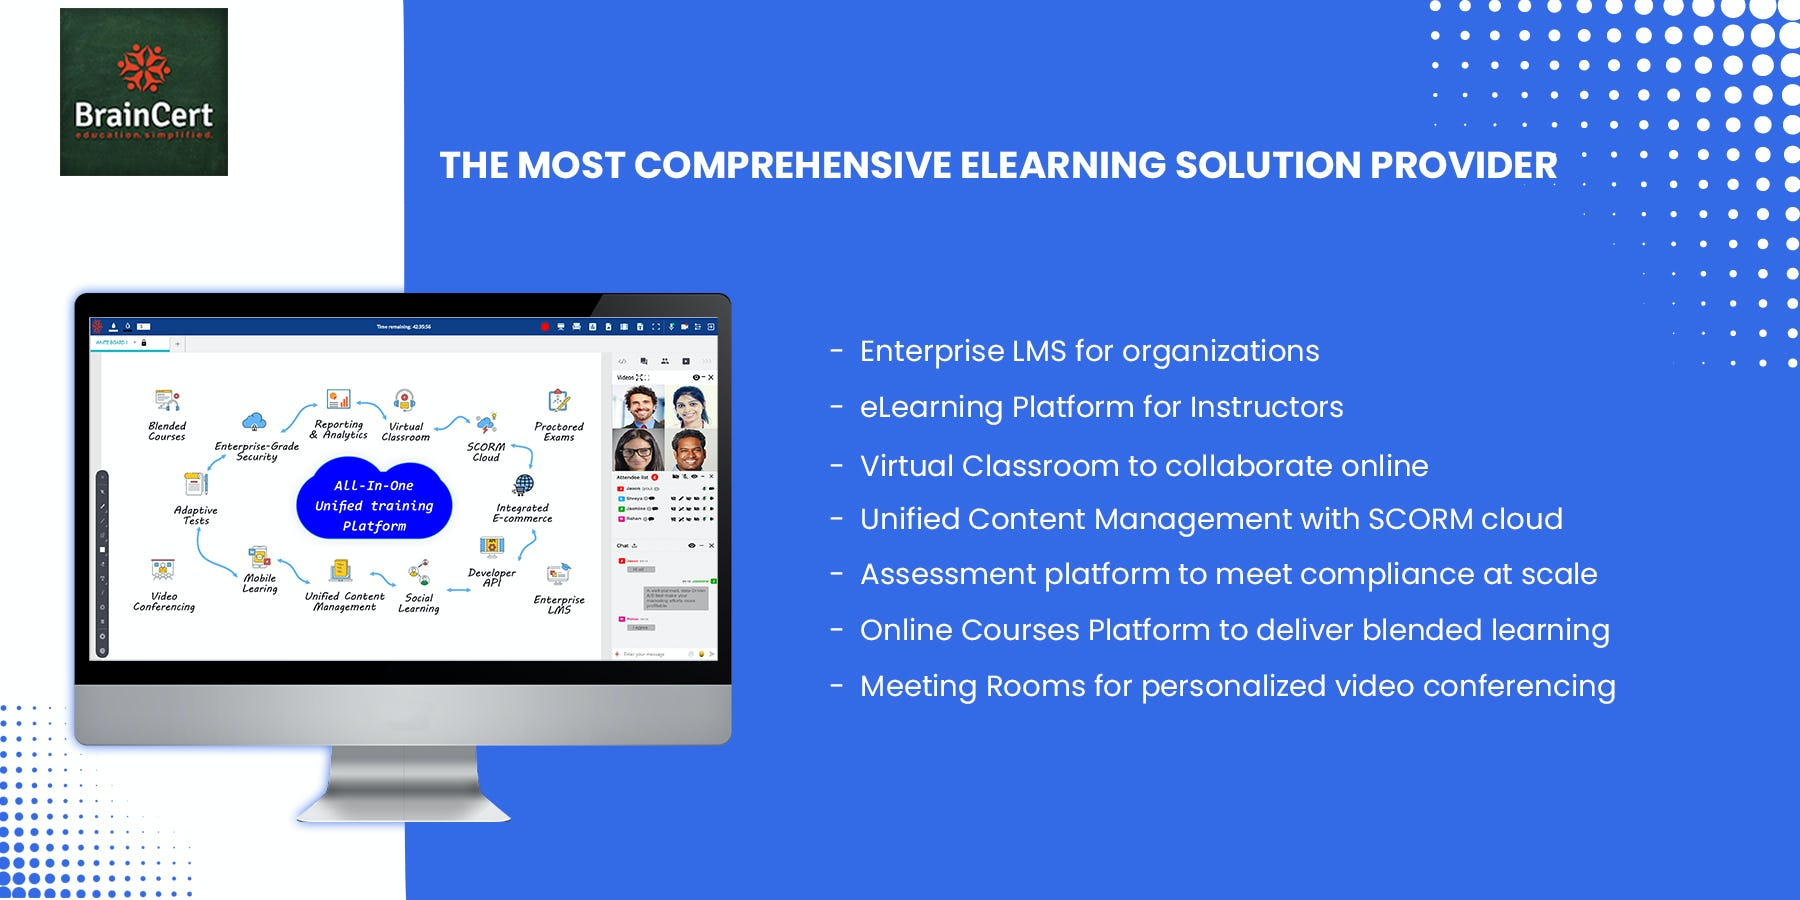 BrainCert offers all the essential building blocks to create a robust and cost-effective eLearning ecosystem in the cloud without worrying about scalability, performance and security posture.